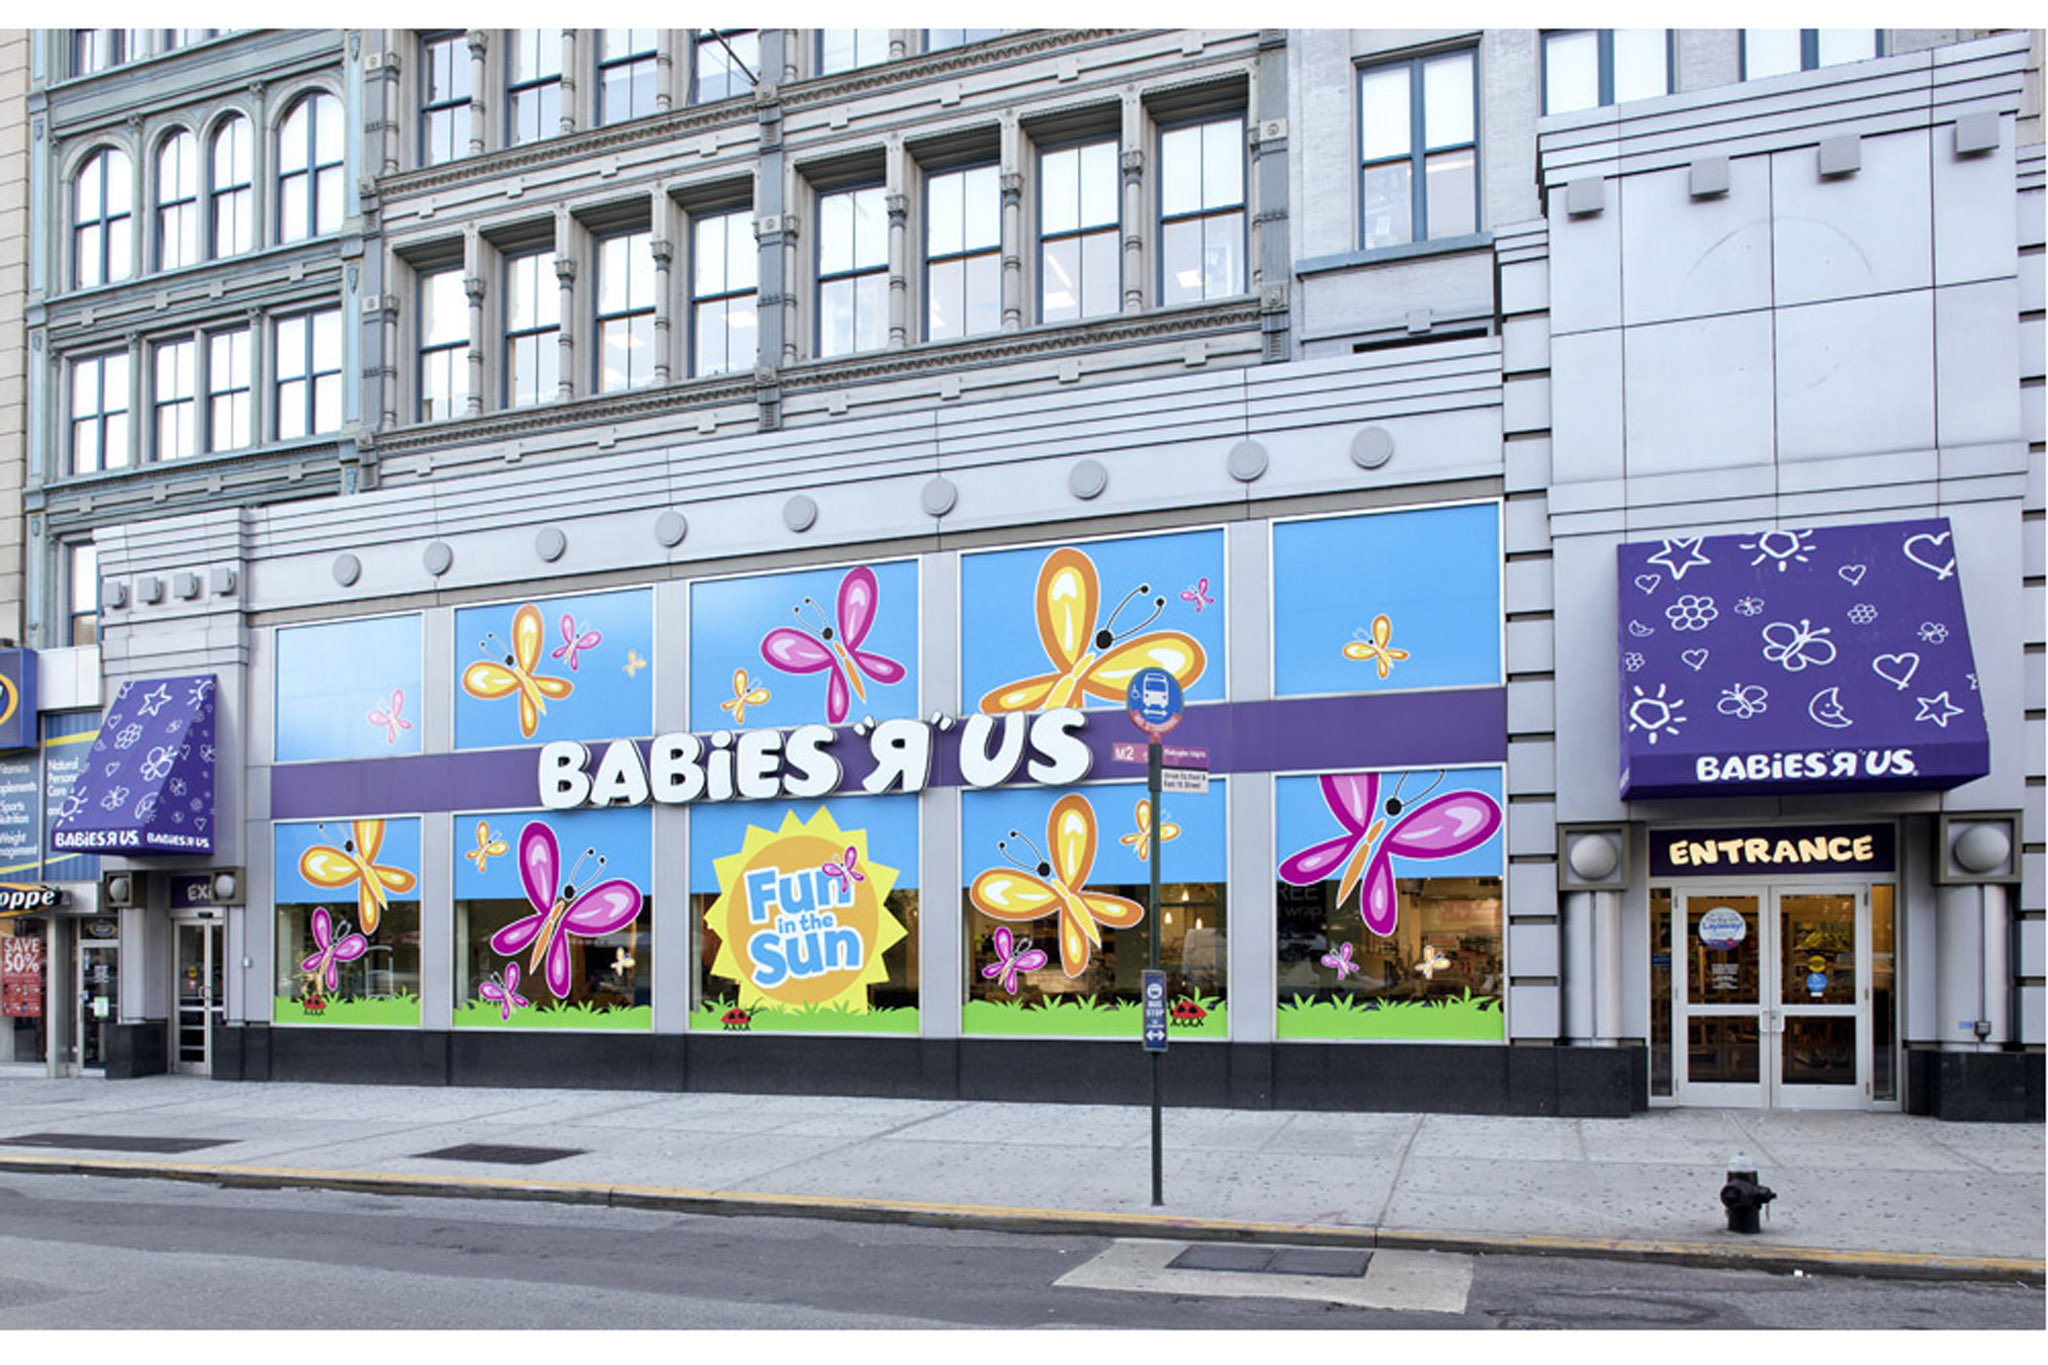 Snuggle Bugz - Canada's Baby Store, Burlington, ON. Sign up for exclusive offers, sales, the latest products in baby, helpful parenting tips, notices, contests, and more from Snuggle Bugz!